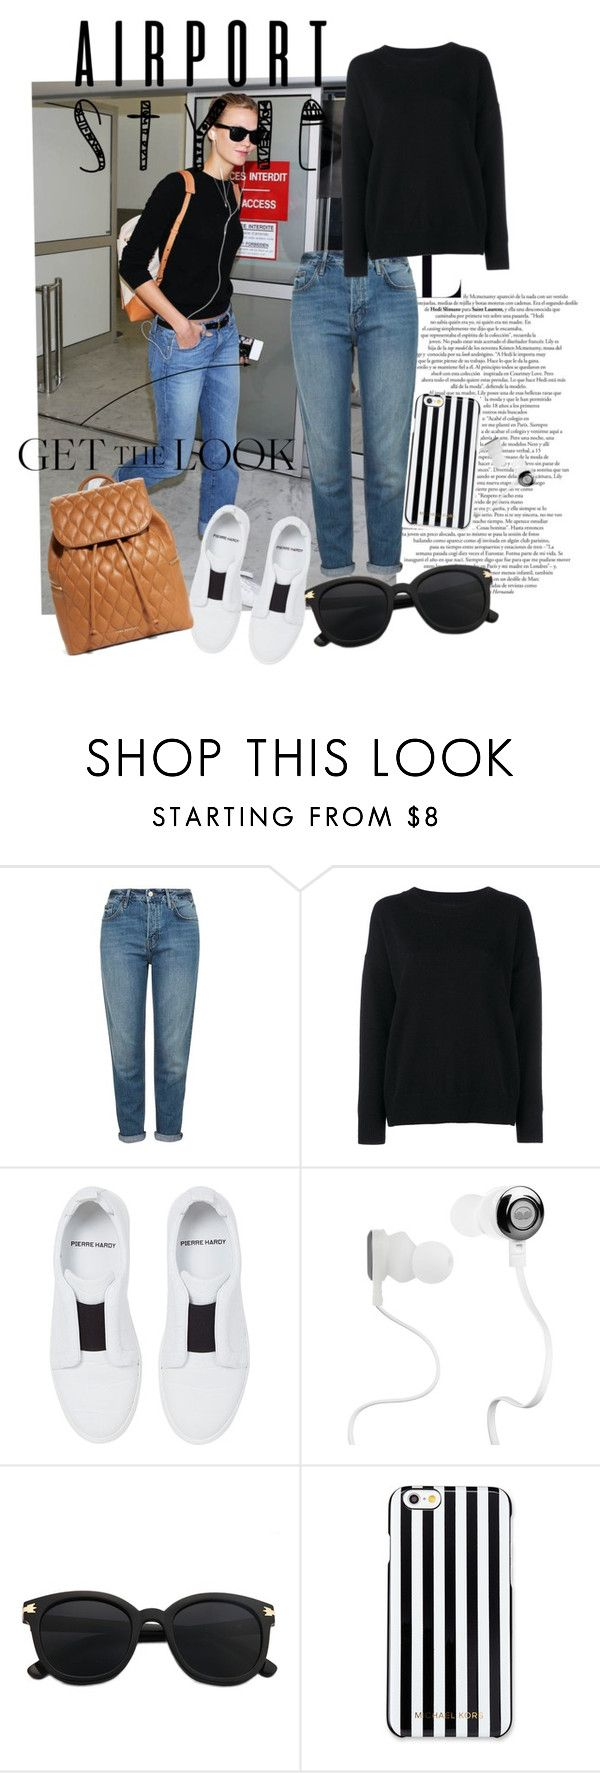 """""""#GTL-Airport Edition"""" by peaches1496 ❤ liked on Polyvore featuring Topshop, Frame Denim, Pierre Hardy, Monster, MICHAEL Michael Kors, Vera Bradley, GetTheLook and airportstyle"""